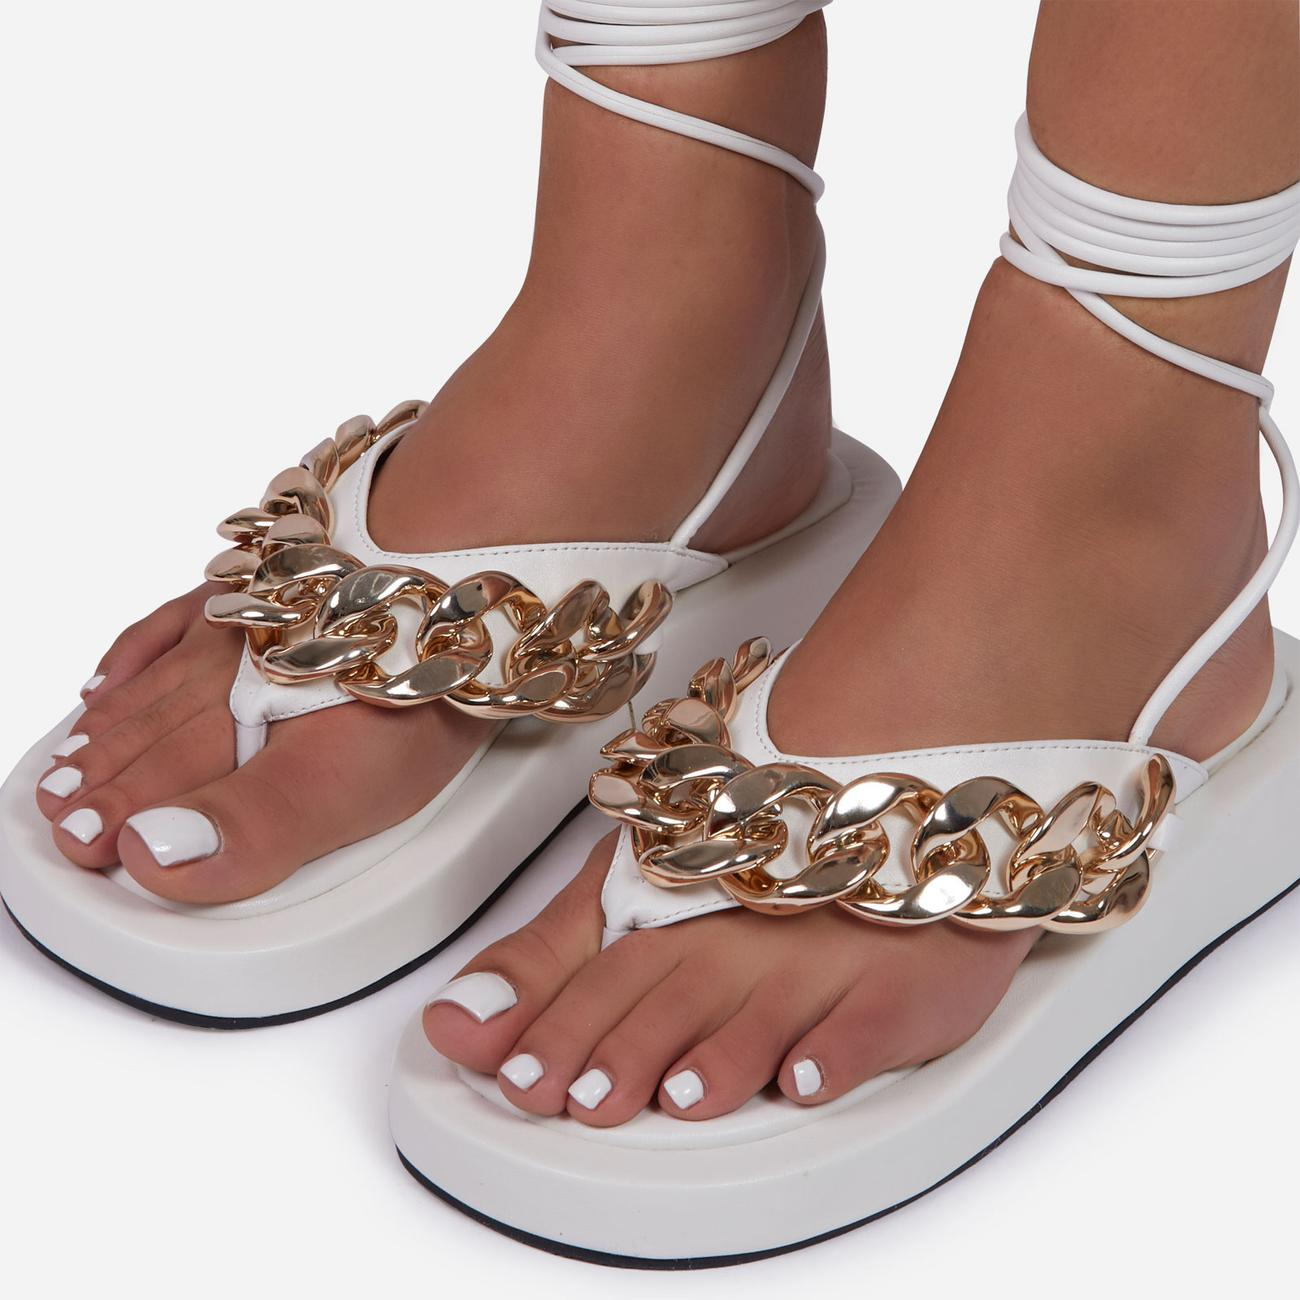 Hidden-Gems Chain Thong Detail Lace Up Platform Gladiator Sandal In White Faux Leather Image 3